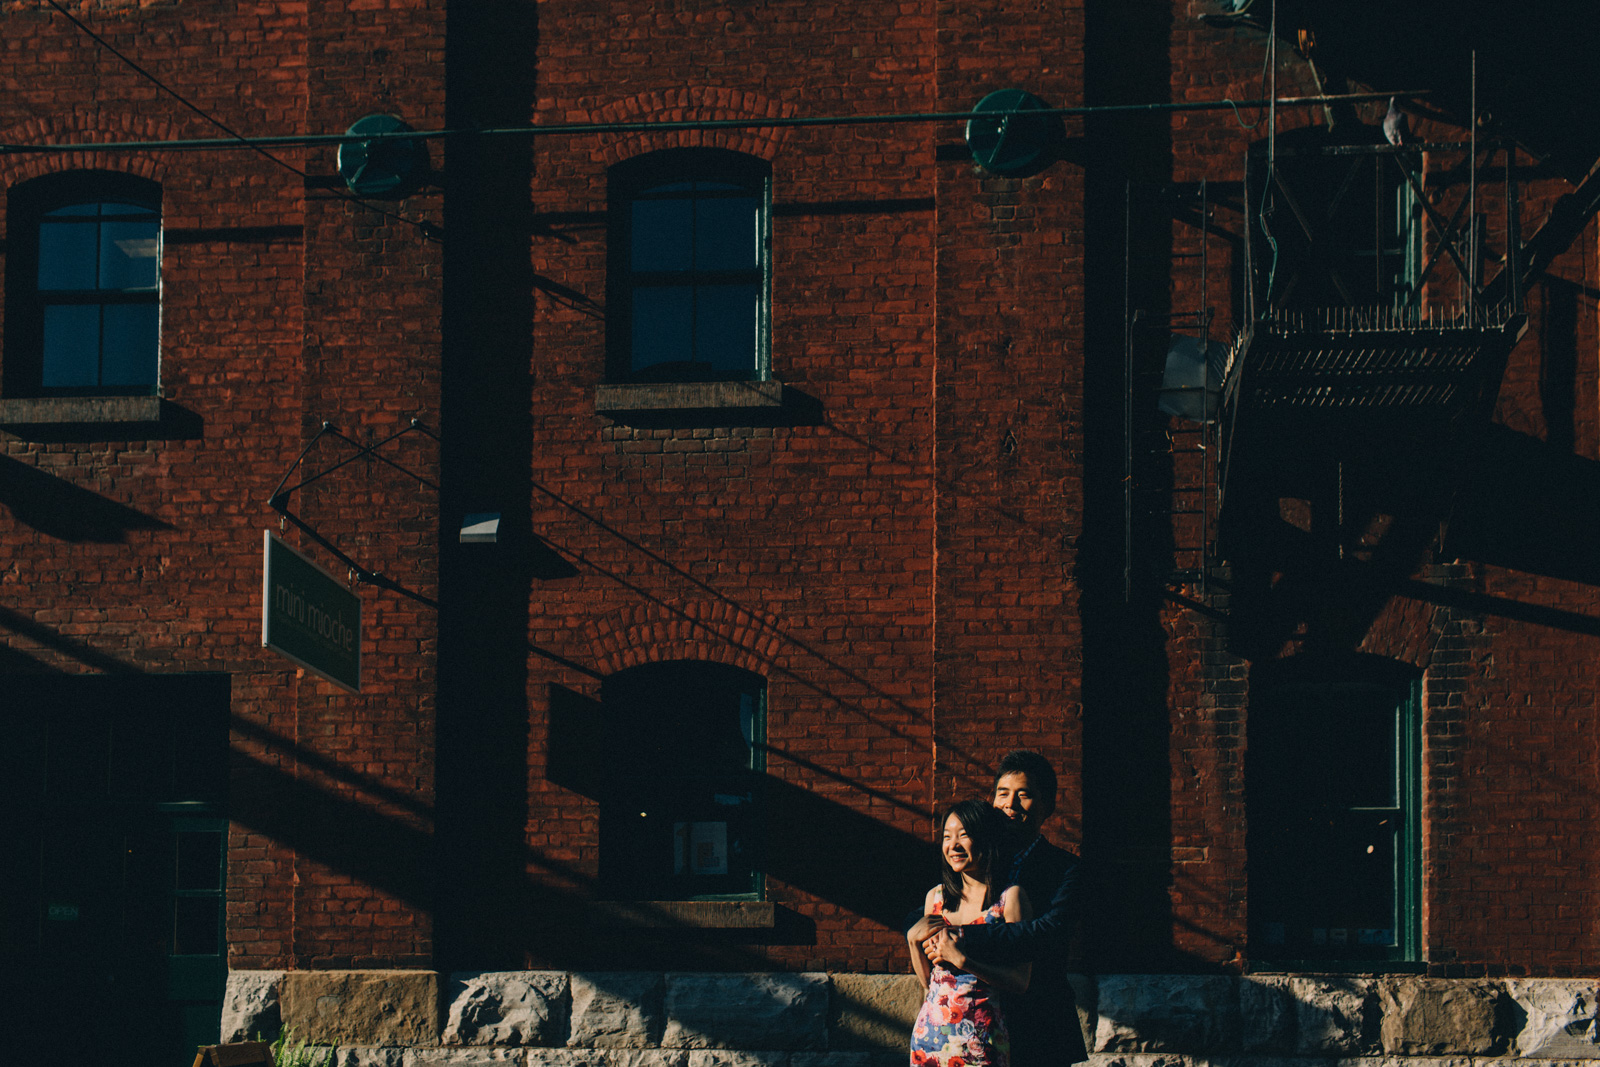 Distillery-District-engagement-photos-Toronto-wedding-photography-by-Sam-Wong-of-Artanis-Collective_014.jpg